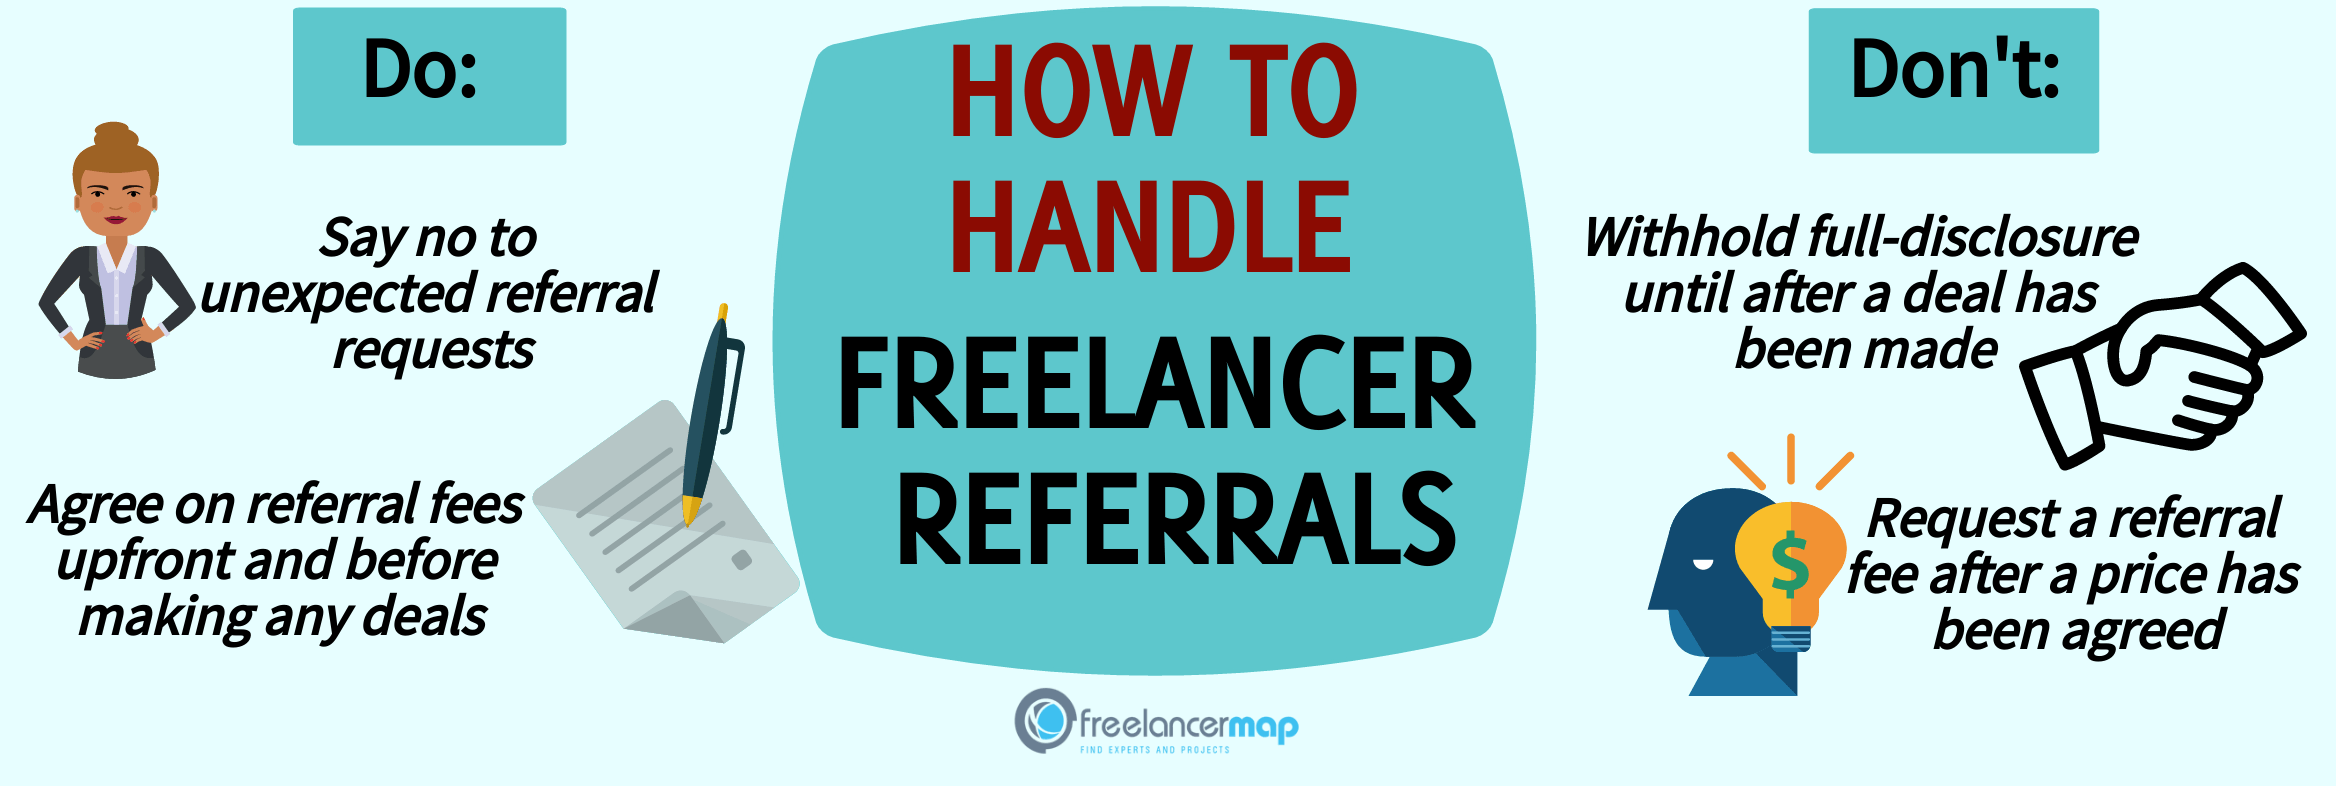 Do's and don'ts on freelancer referral fees